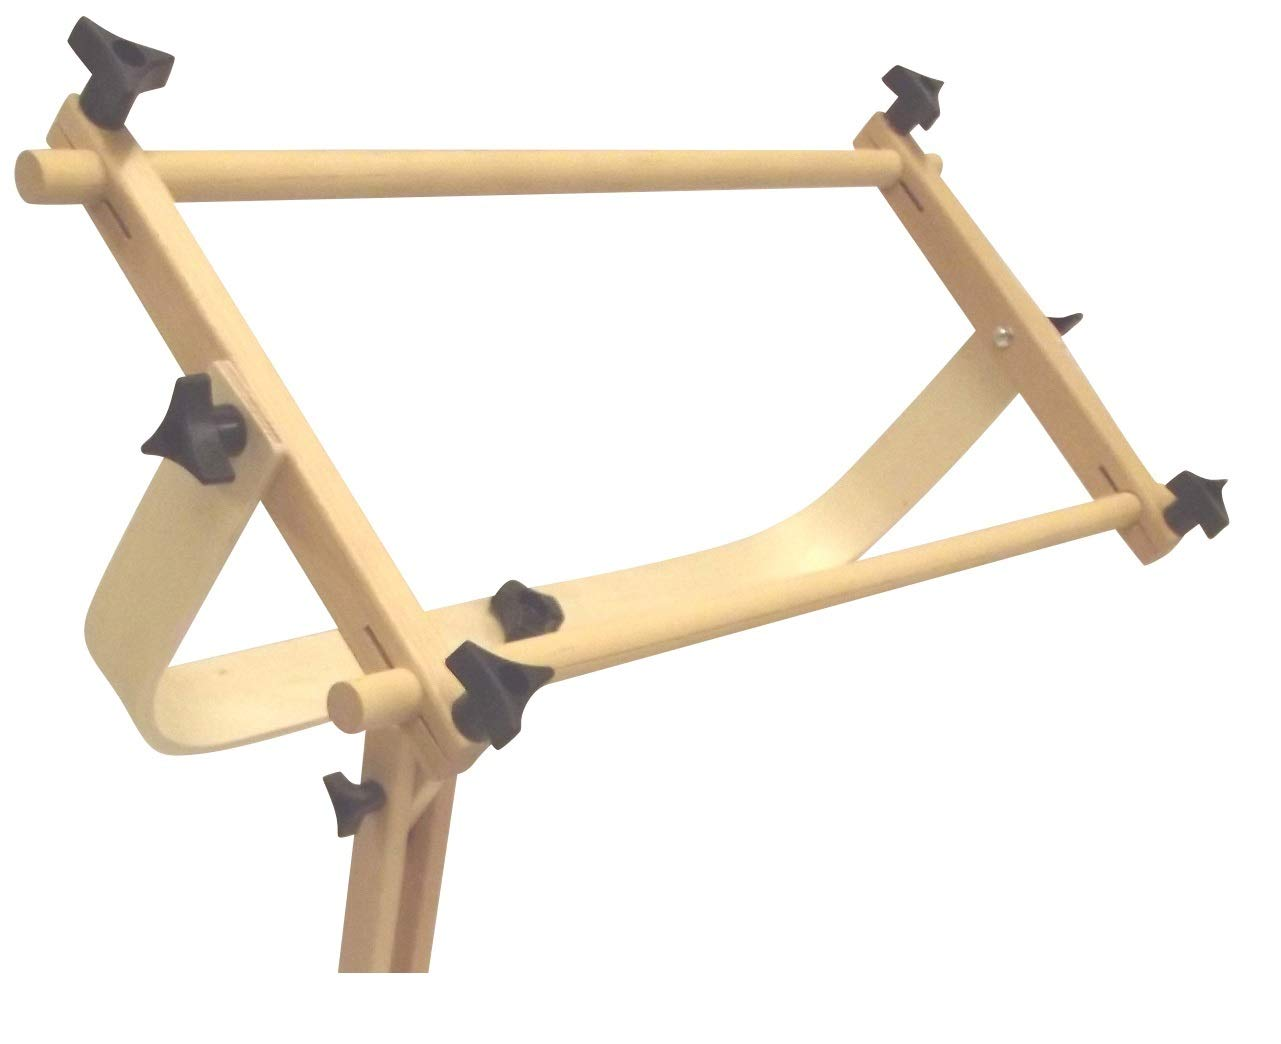 Frank A. Edmunds Sticher's Wonder! Adjustable Craft Stand with Split Rail Scroll Frame, 6115 by Frank Edmunds & Co.